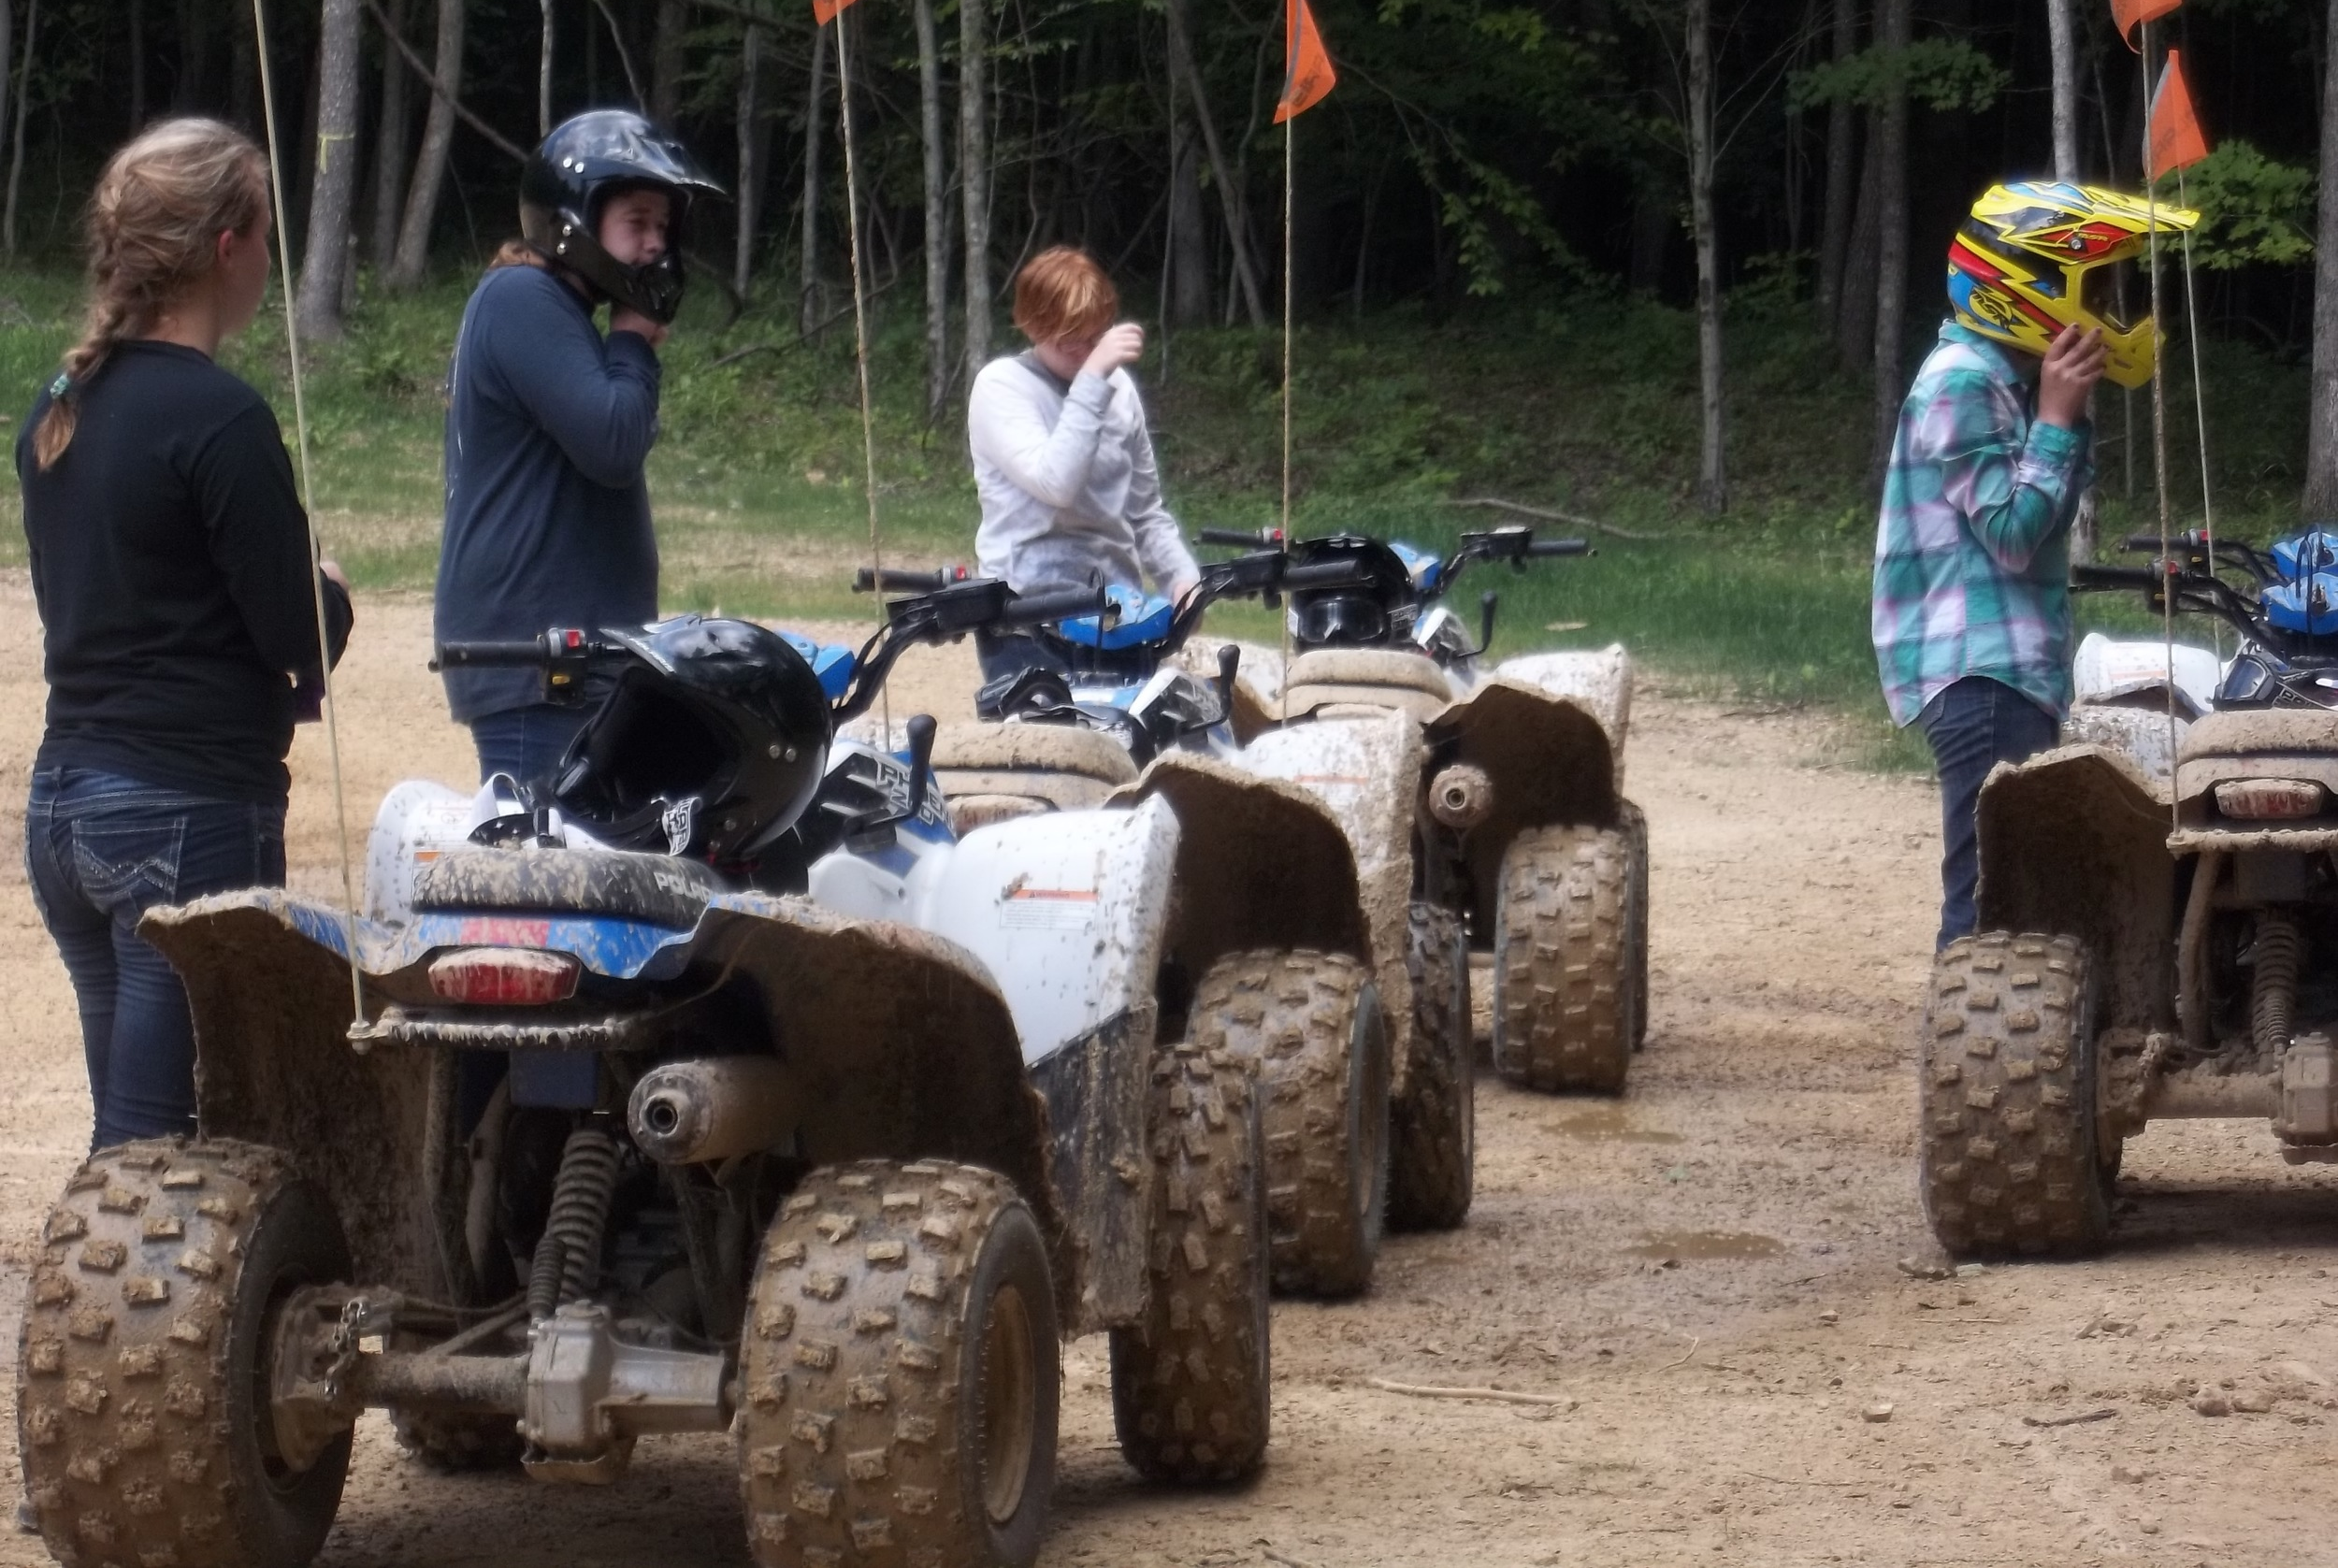 Scouts prepare to mount their ATV's and do a circuit ride around camp.